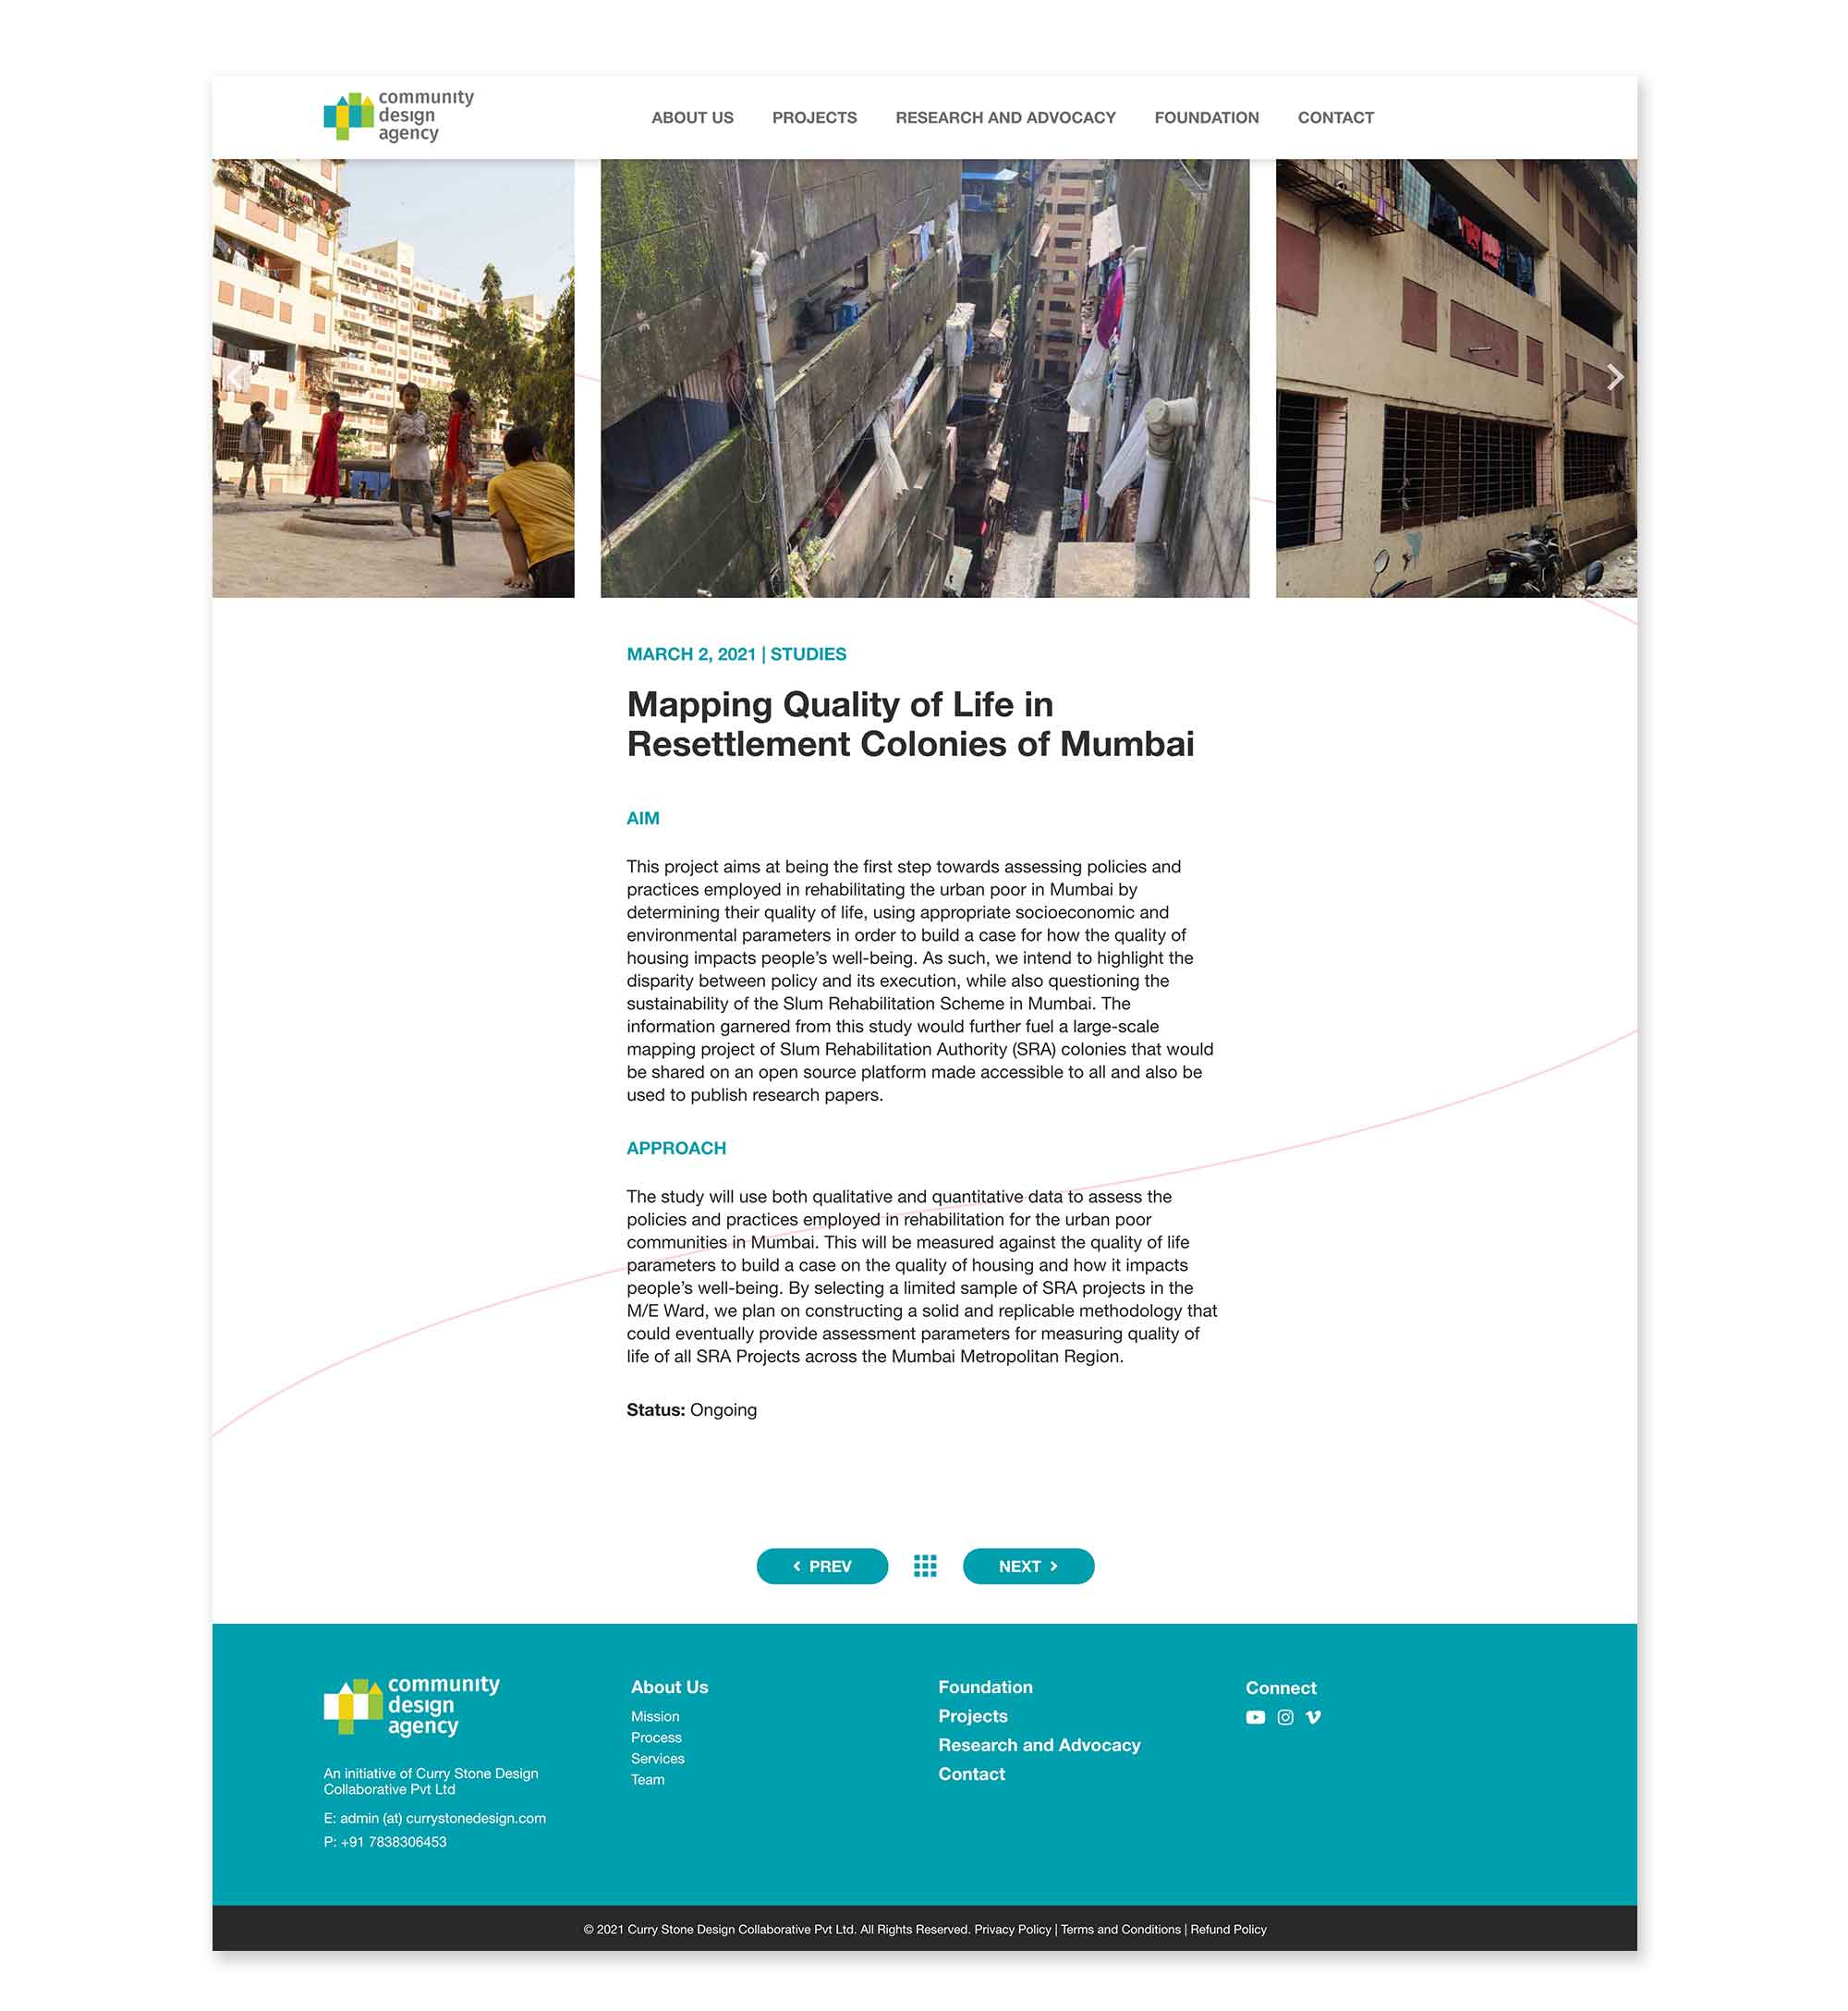 The Research and Advocacy Page helps to provide socio-cultural understanding of projects and the diverse perspectives and insights that can influence policy level decisions to create spatial equality and equity in the built environment.